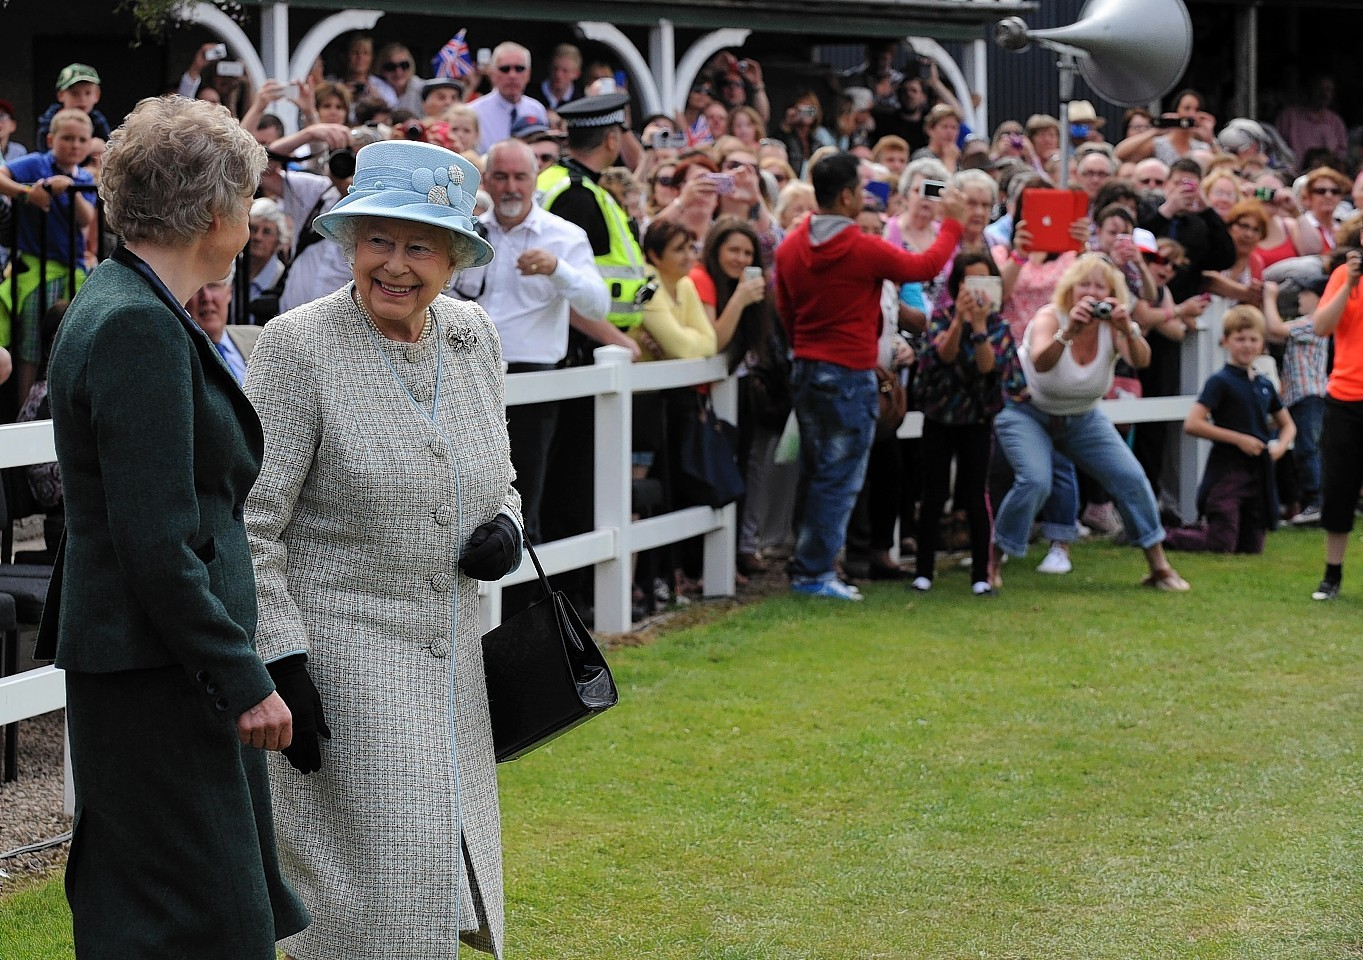 The Queen is welcomed at the Turriff Show